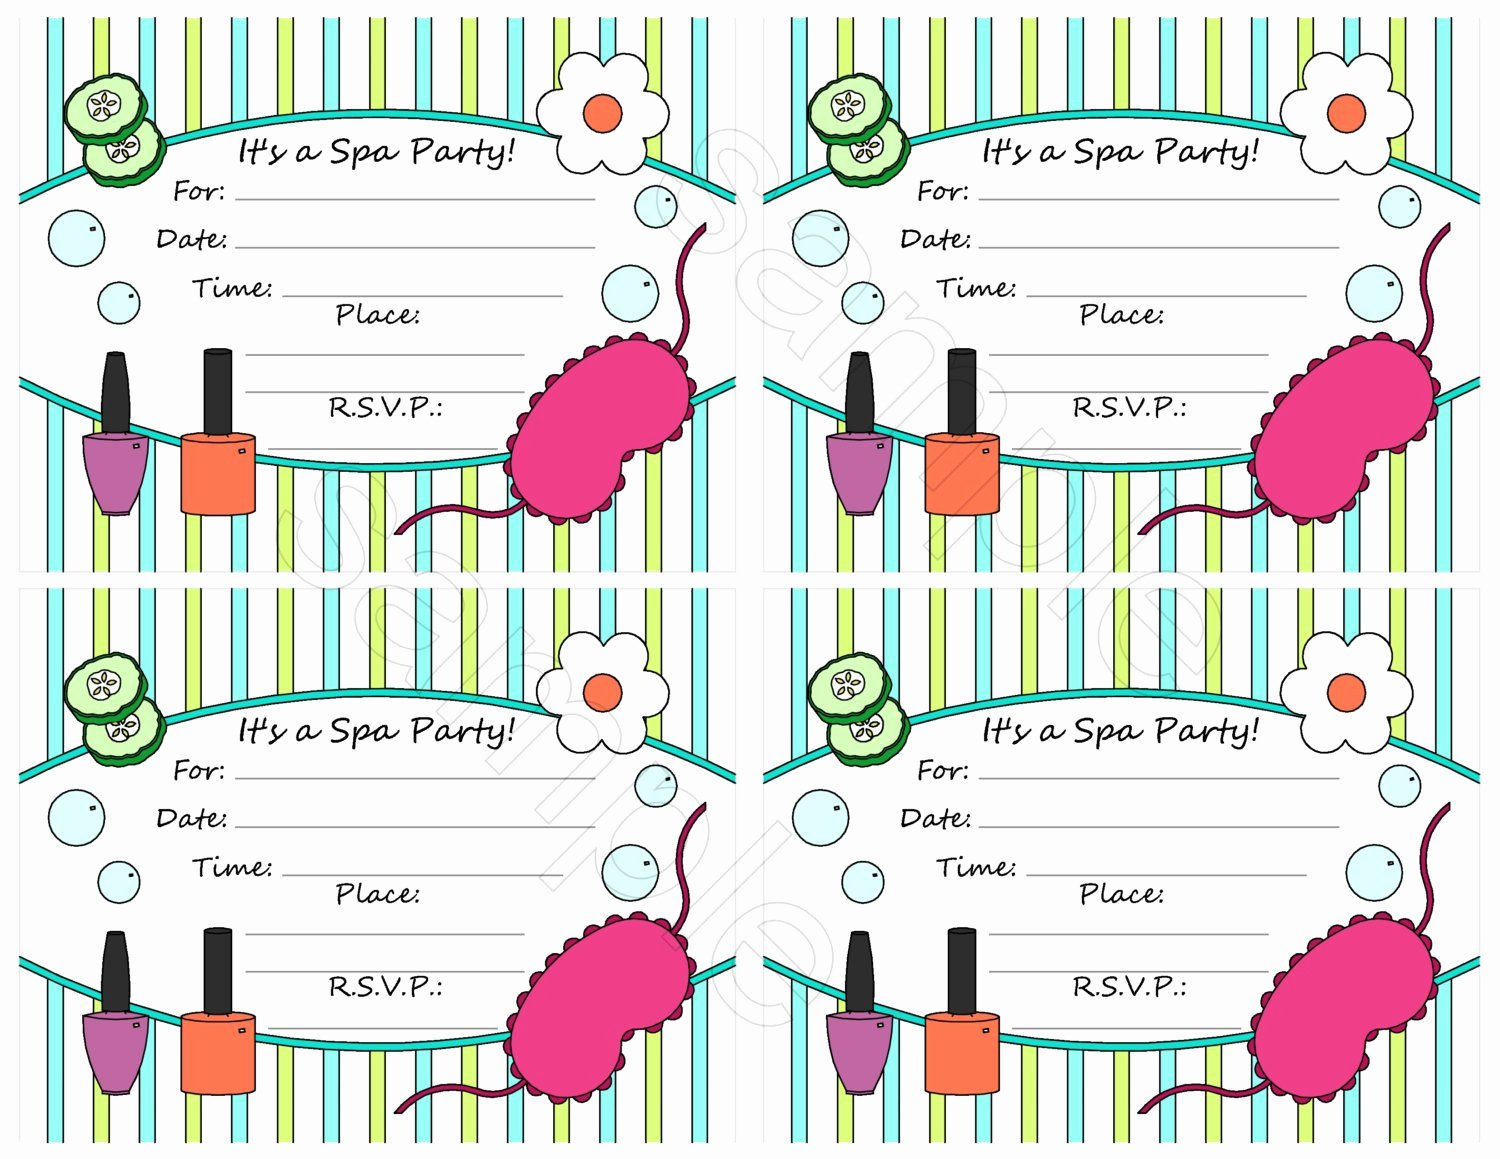 Spa Party Invite Template Fresh Spa Party Invitation Blank Templates